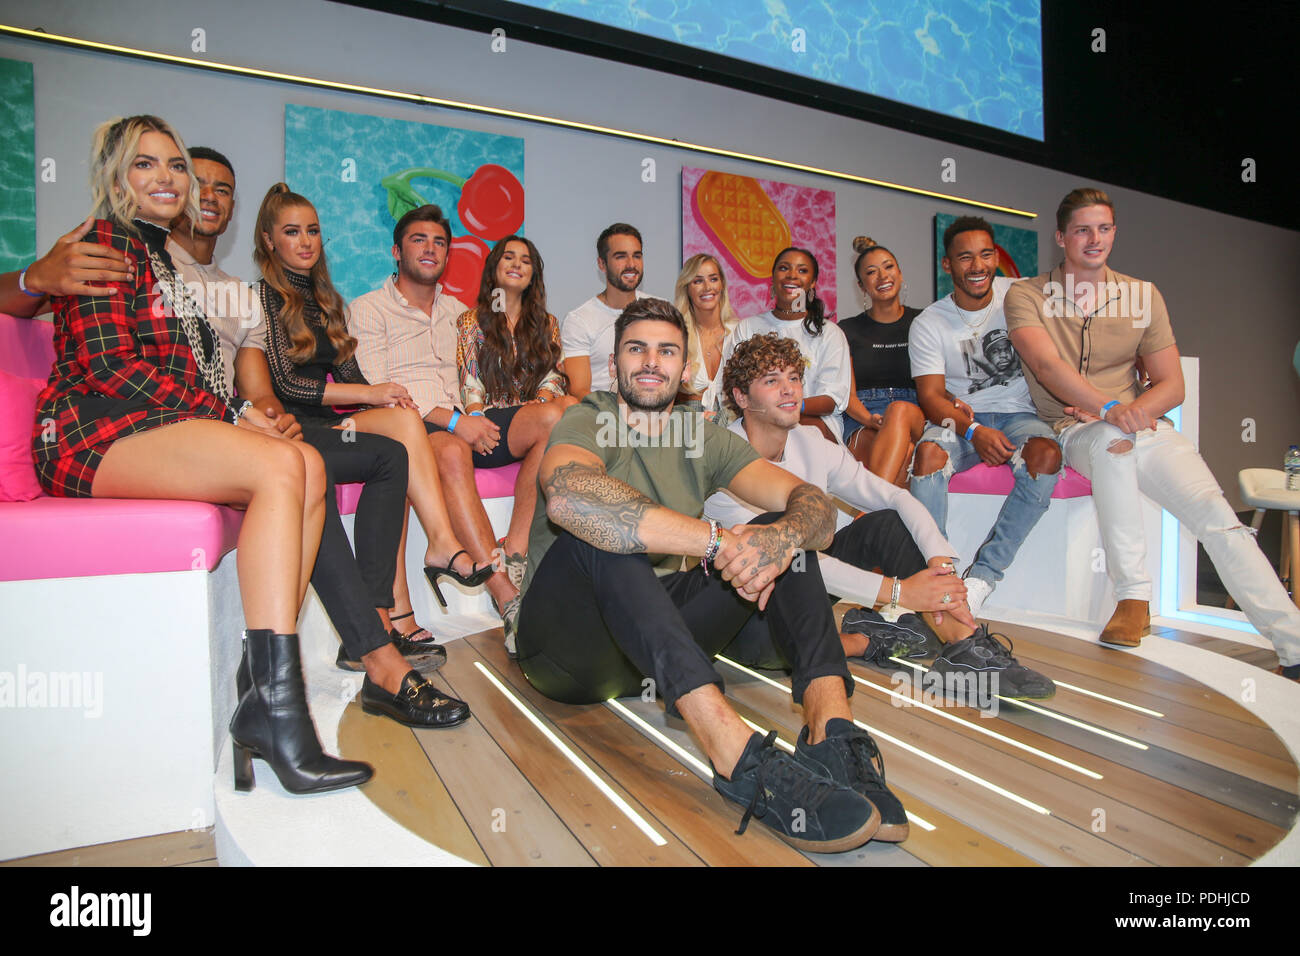 London uk 10 august 2018 the contestants of love island the most 2018 the contestants of love island the most talked about program this summer got together in the london excel for a live stage show and meet greet m4hsunfo